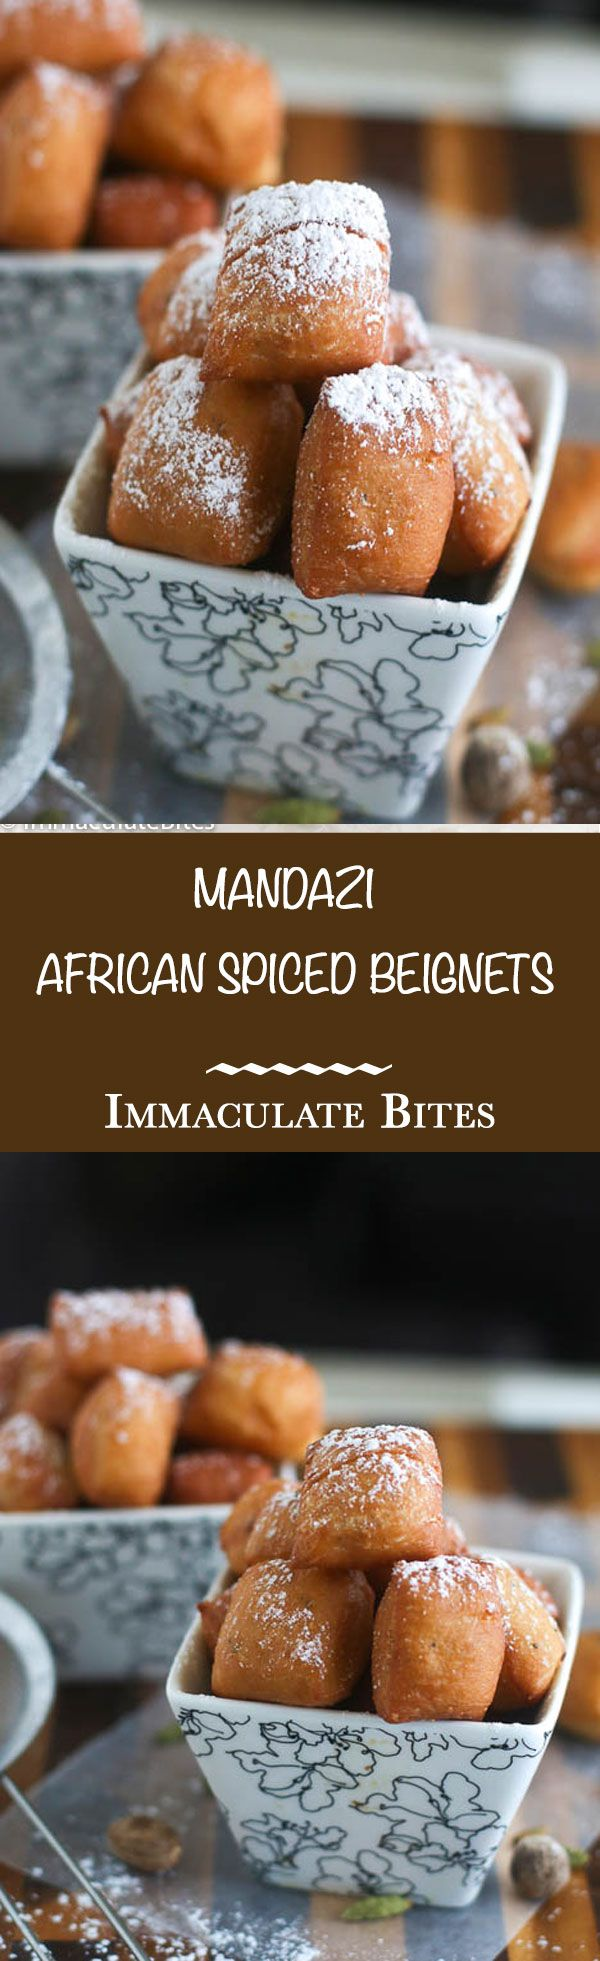 Mandazi - Mini Spice African Beignet. Light, fluffy and Addictive. So easy to make with step-by-step pictorial.